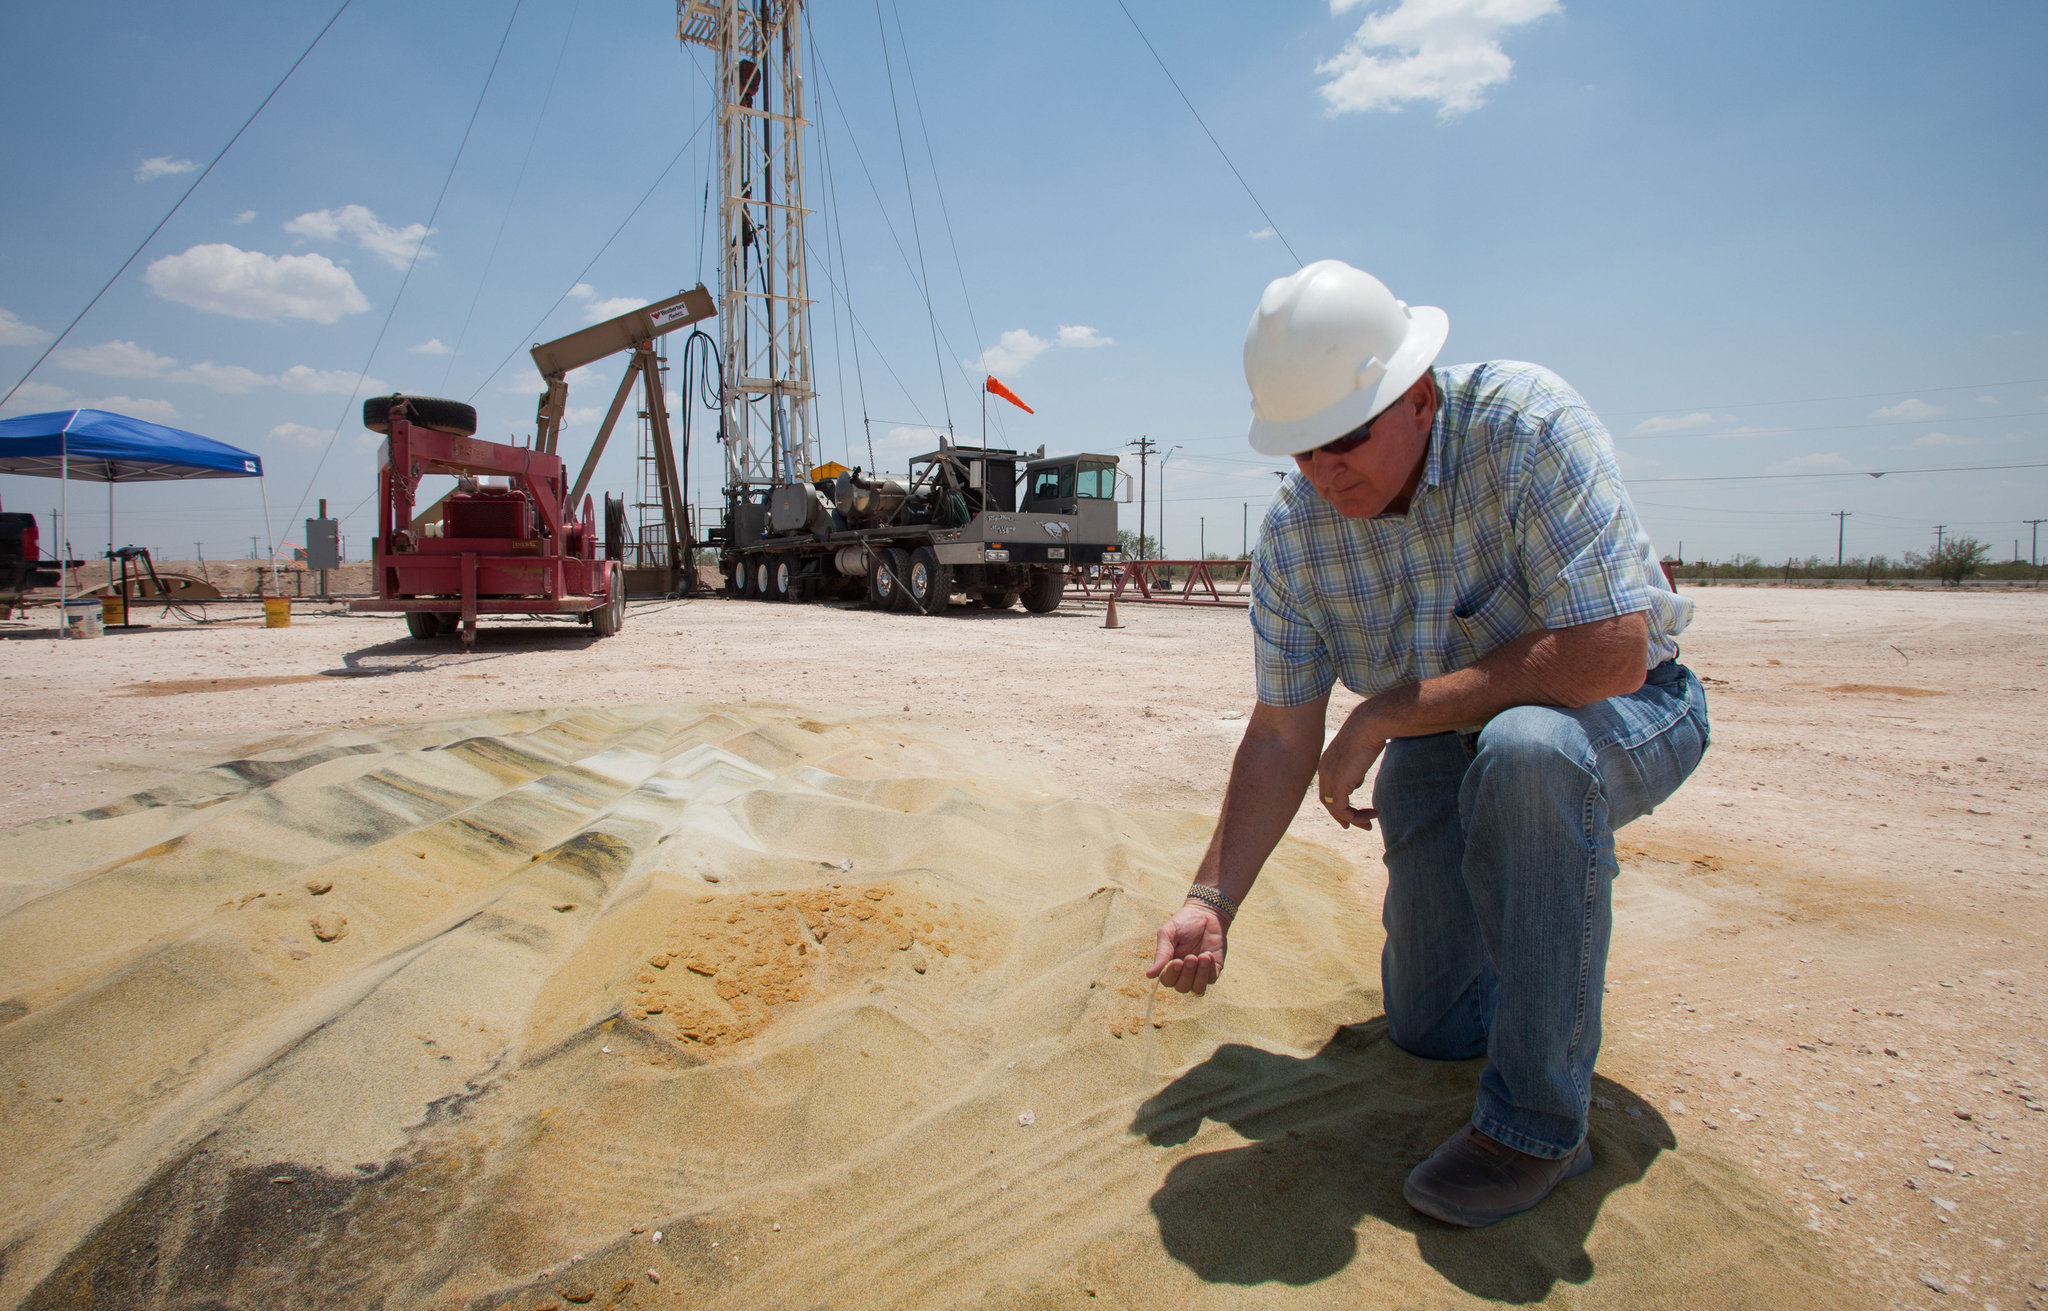 West Texas Oil Boom Creates Housing Shortage and Other